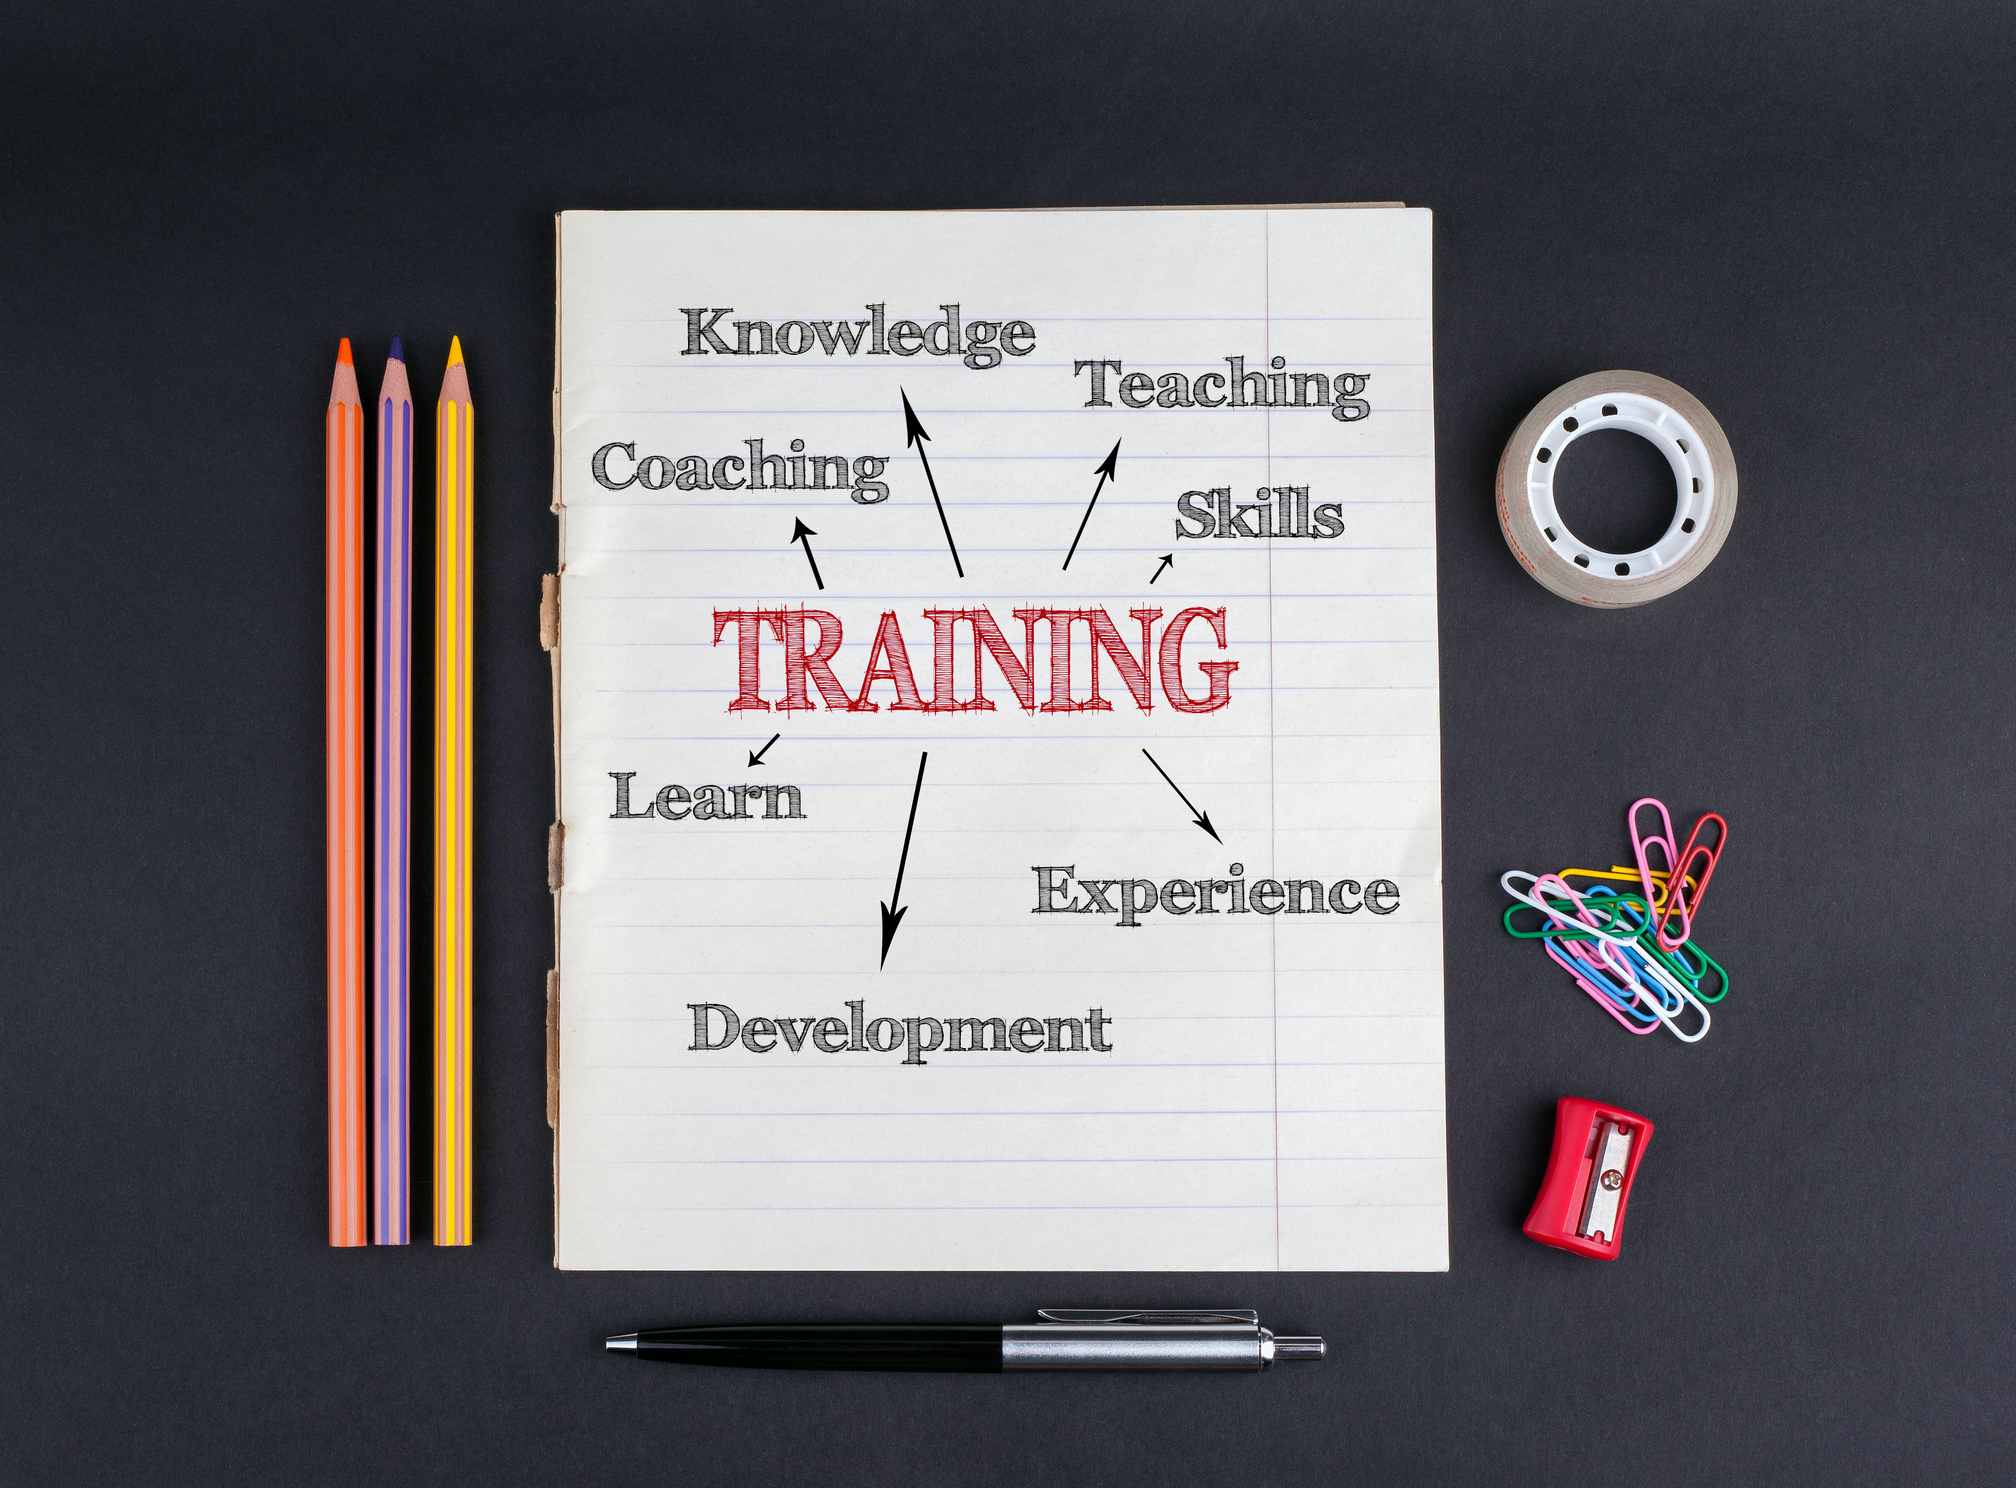 24/7 Training - Online, over the phone and in-person, we have all your training and learning opportunities covered. Your success is our success.